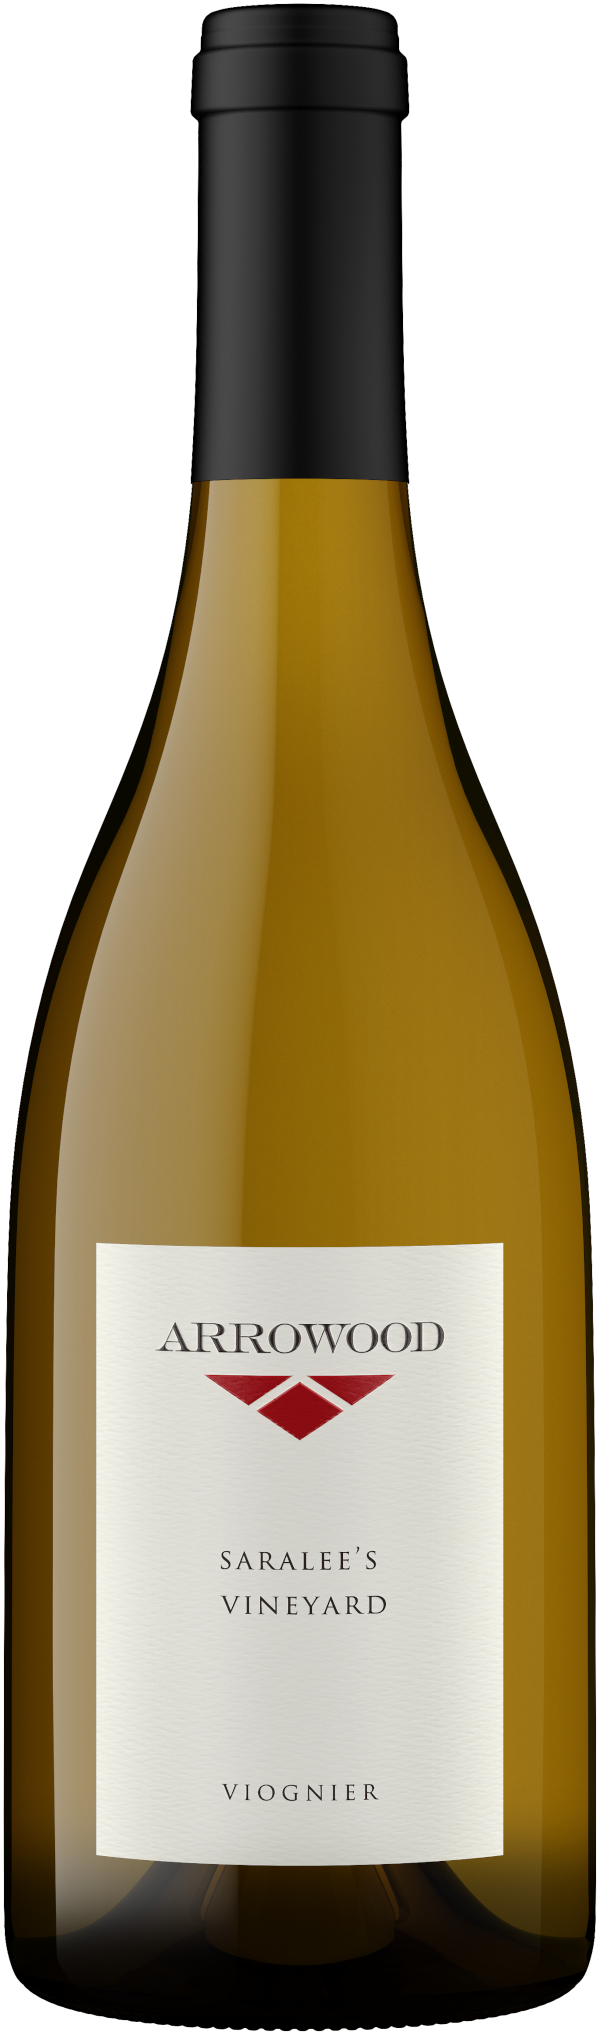 AWD_NV_Saralees_Viognier_Outshinery.png